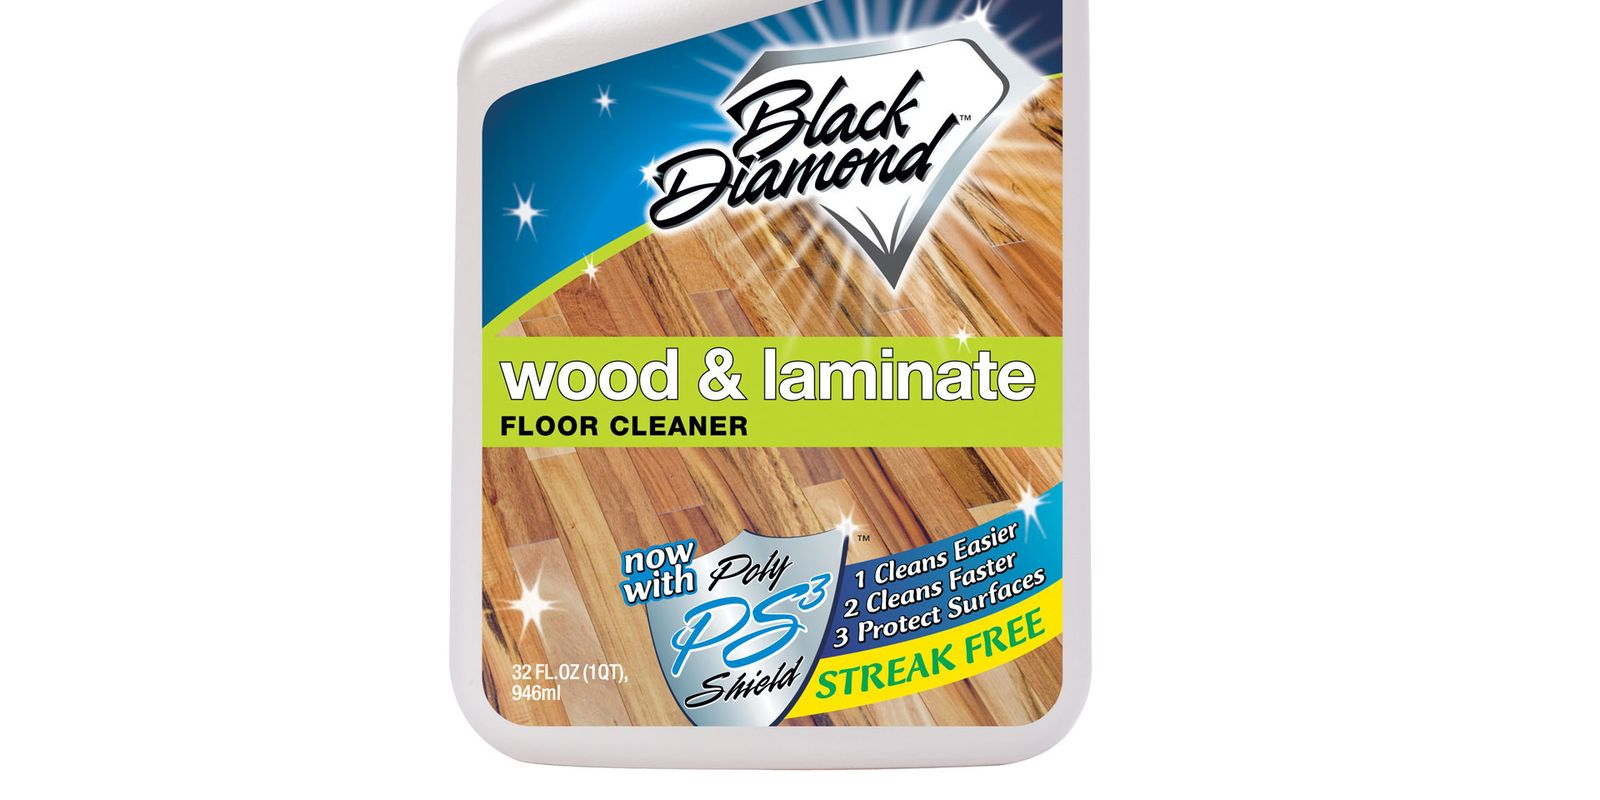 Black Diamond Wood And Laminate Floor Cleaner Review - Clean laminate wood floors